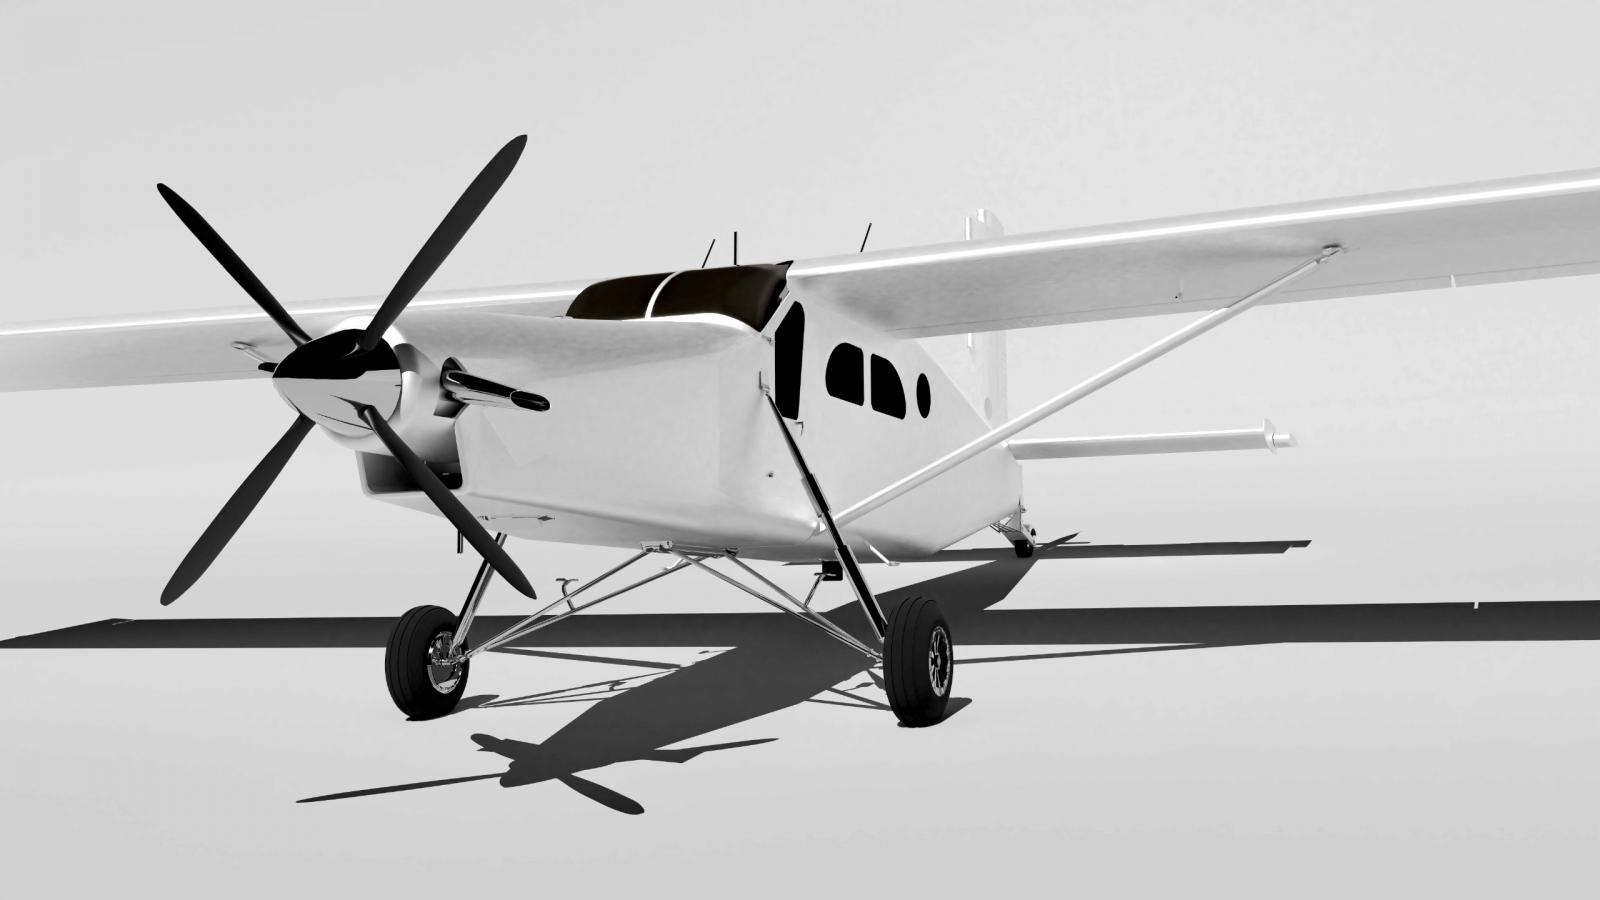 Announcing the Pilatus PC6 project - Thranda - X-Plane Org Forum